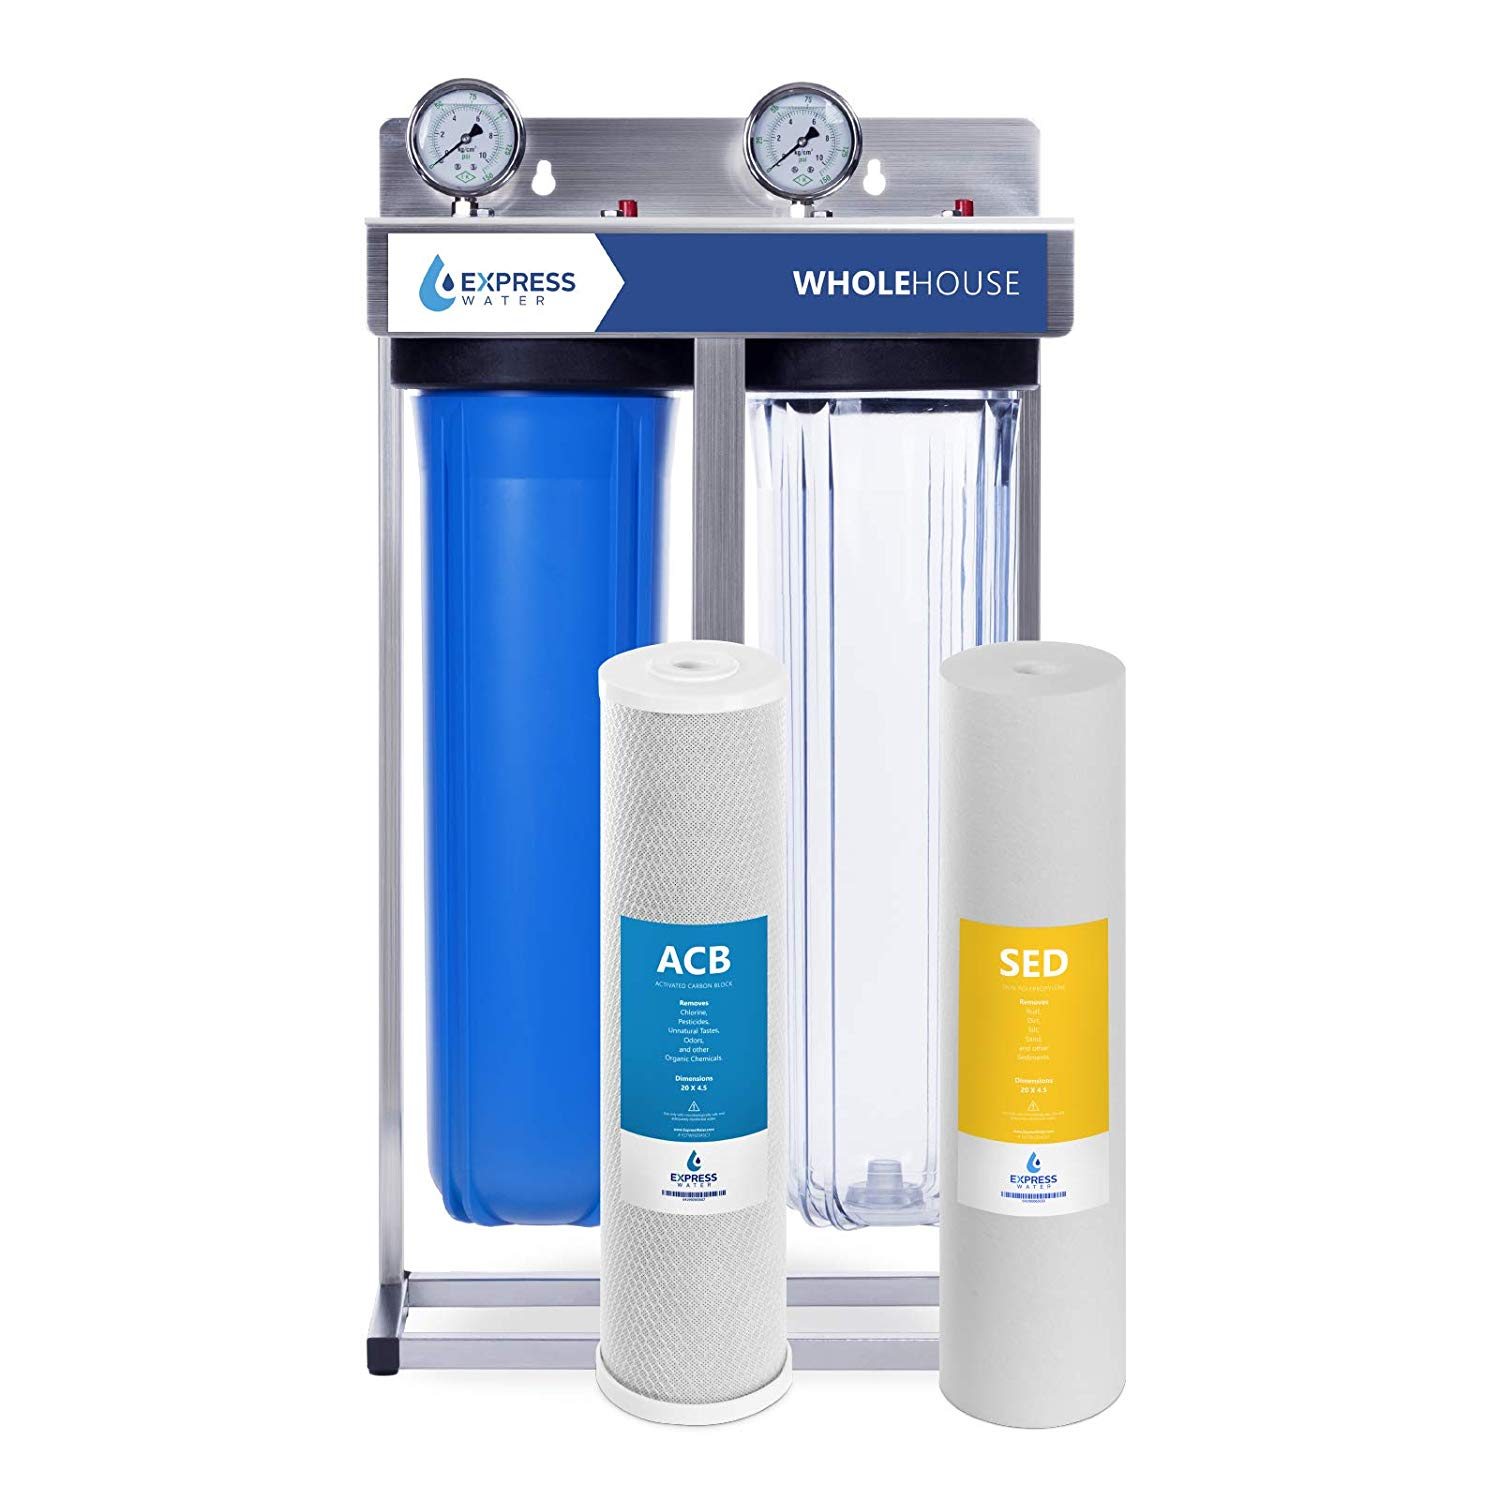 Express Water Whole House Water Filter – 2 Stage Home Water Filtration  System – Sediment and Carbon Filter – includes Pressure Gauge, Easy